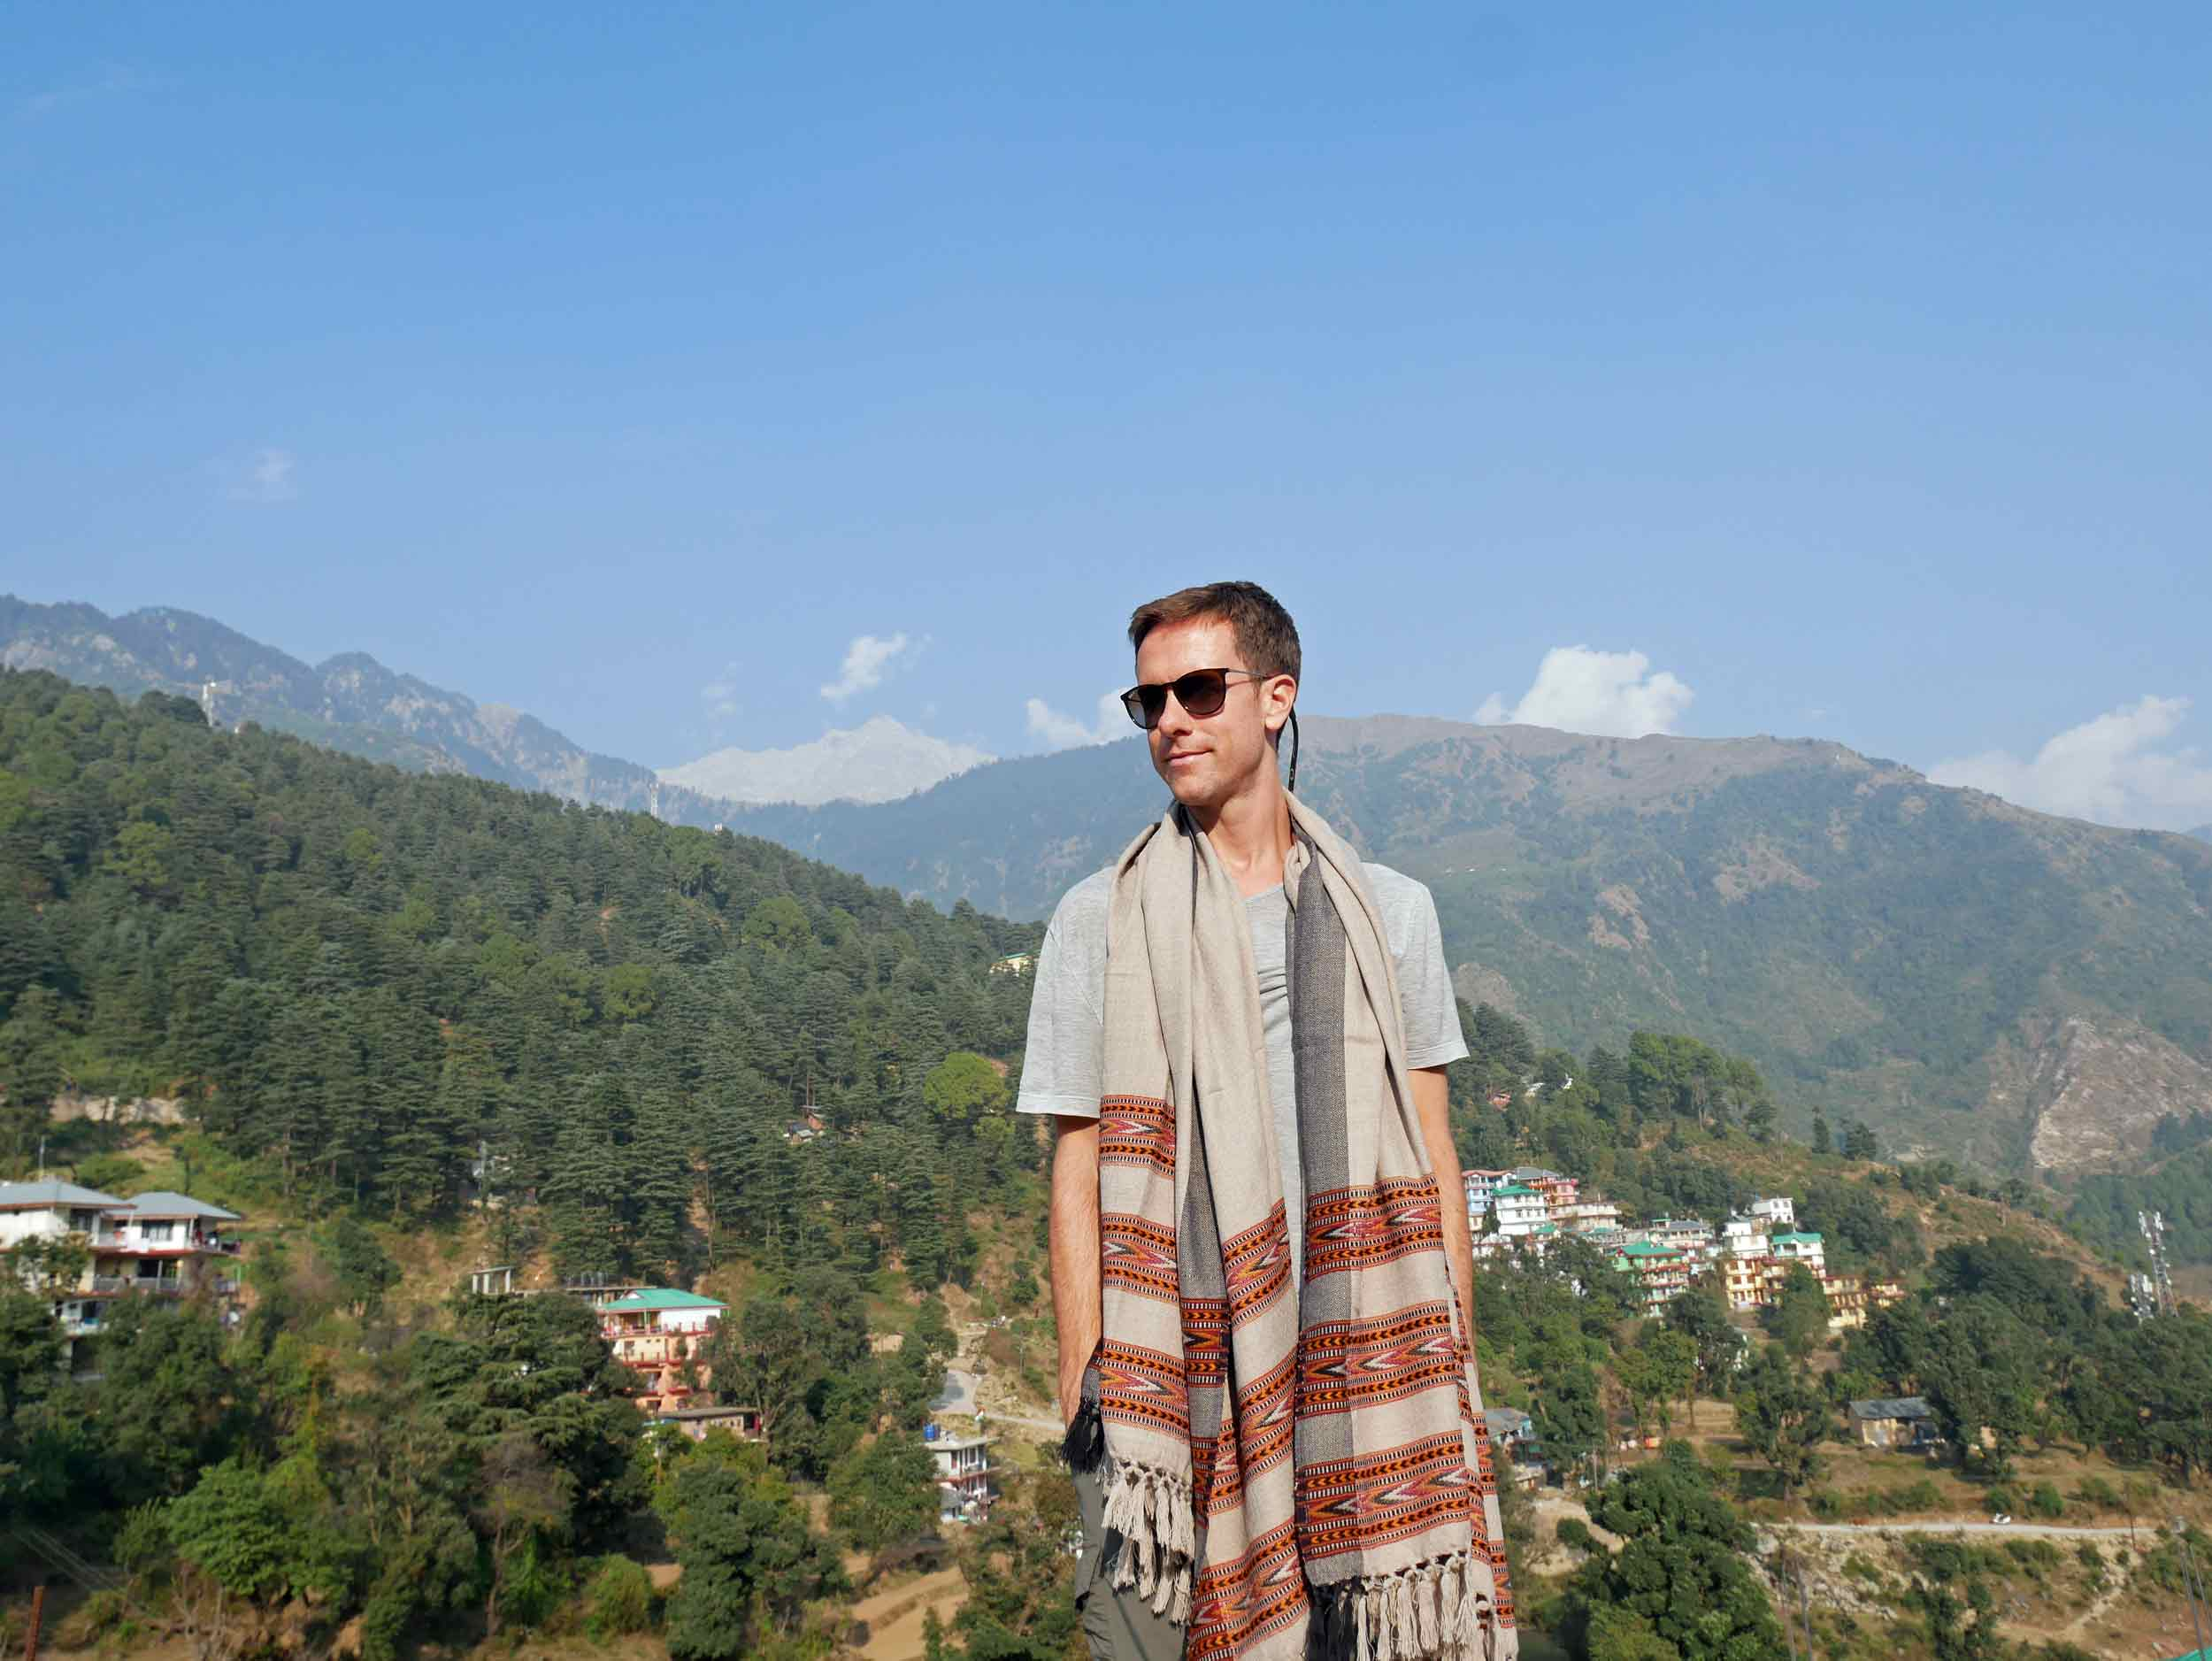 Martin wearing a Tibetan shawl and taking in the sunshine on our roof deck, overlooking the Buddhist village in the Himalayas.